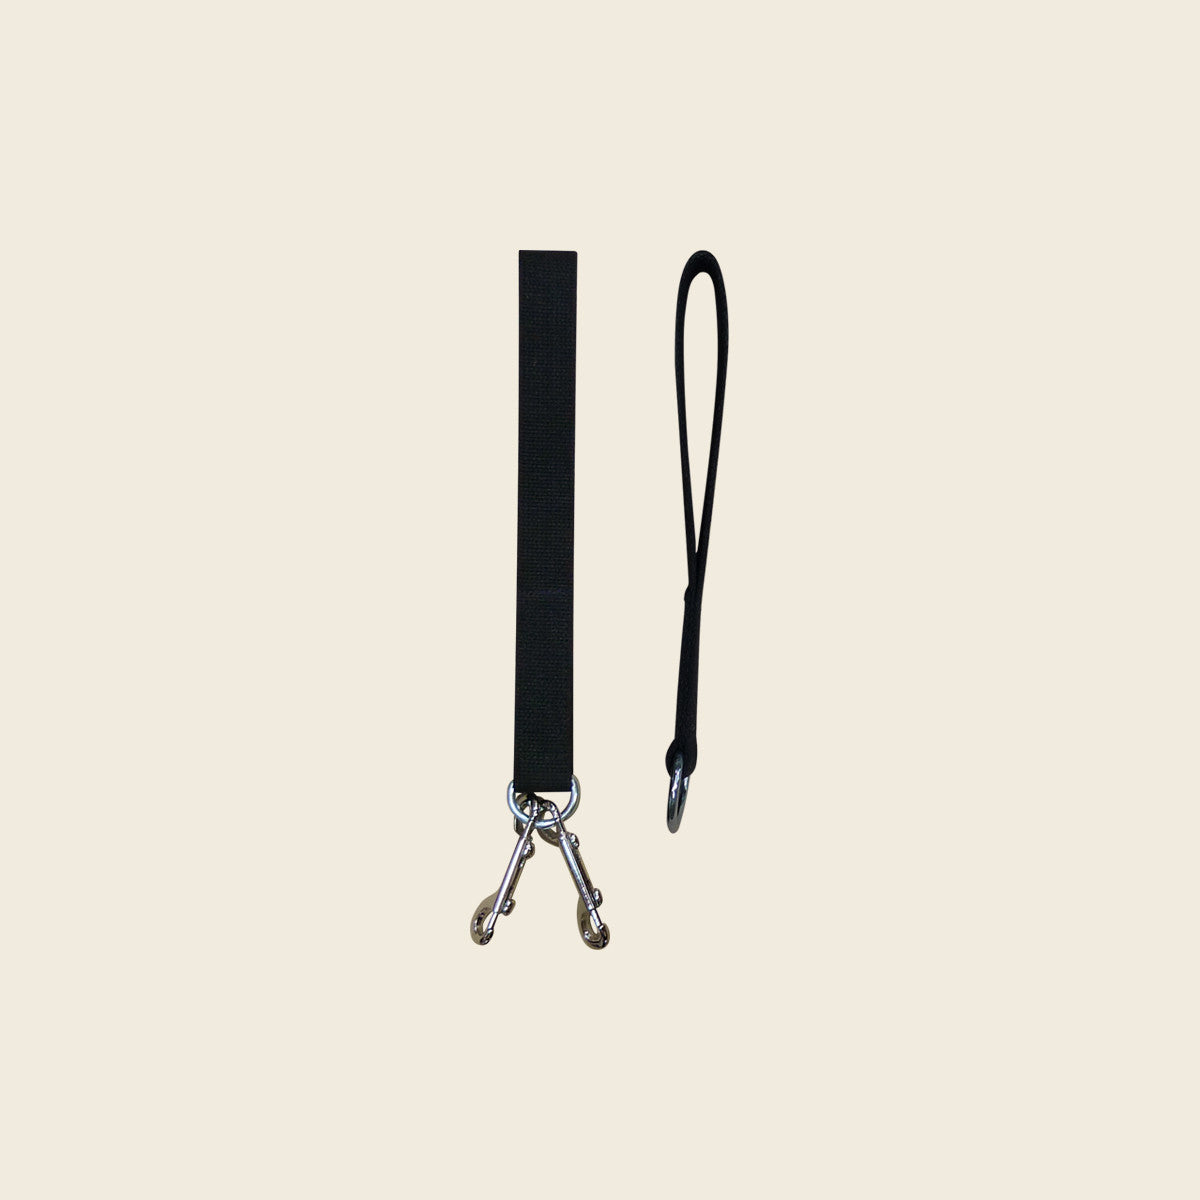 LOOPS STRAPS & DOUBLE HOOKS FOR ARM SPRINGS (PAIR)